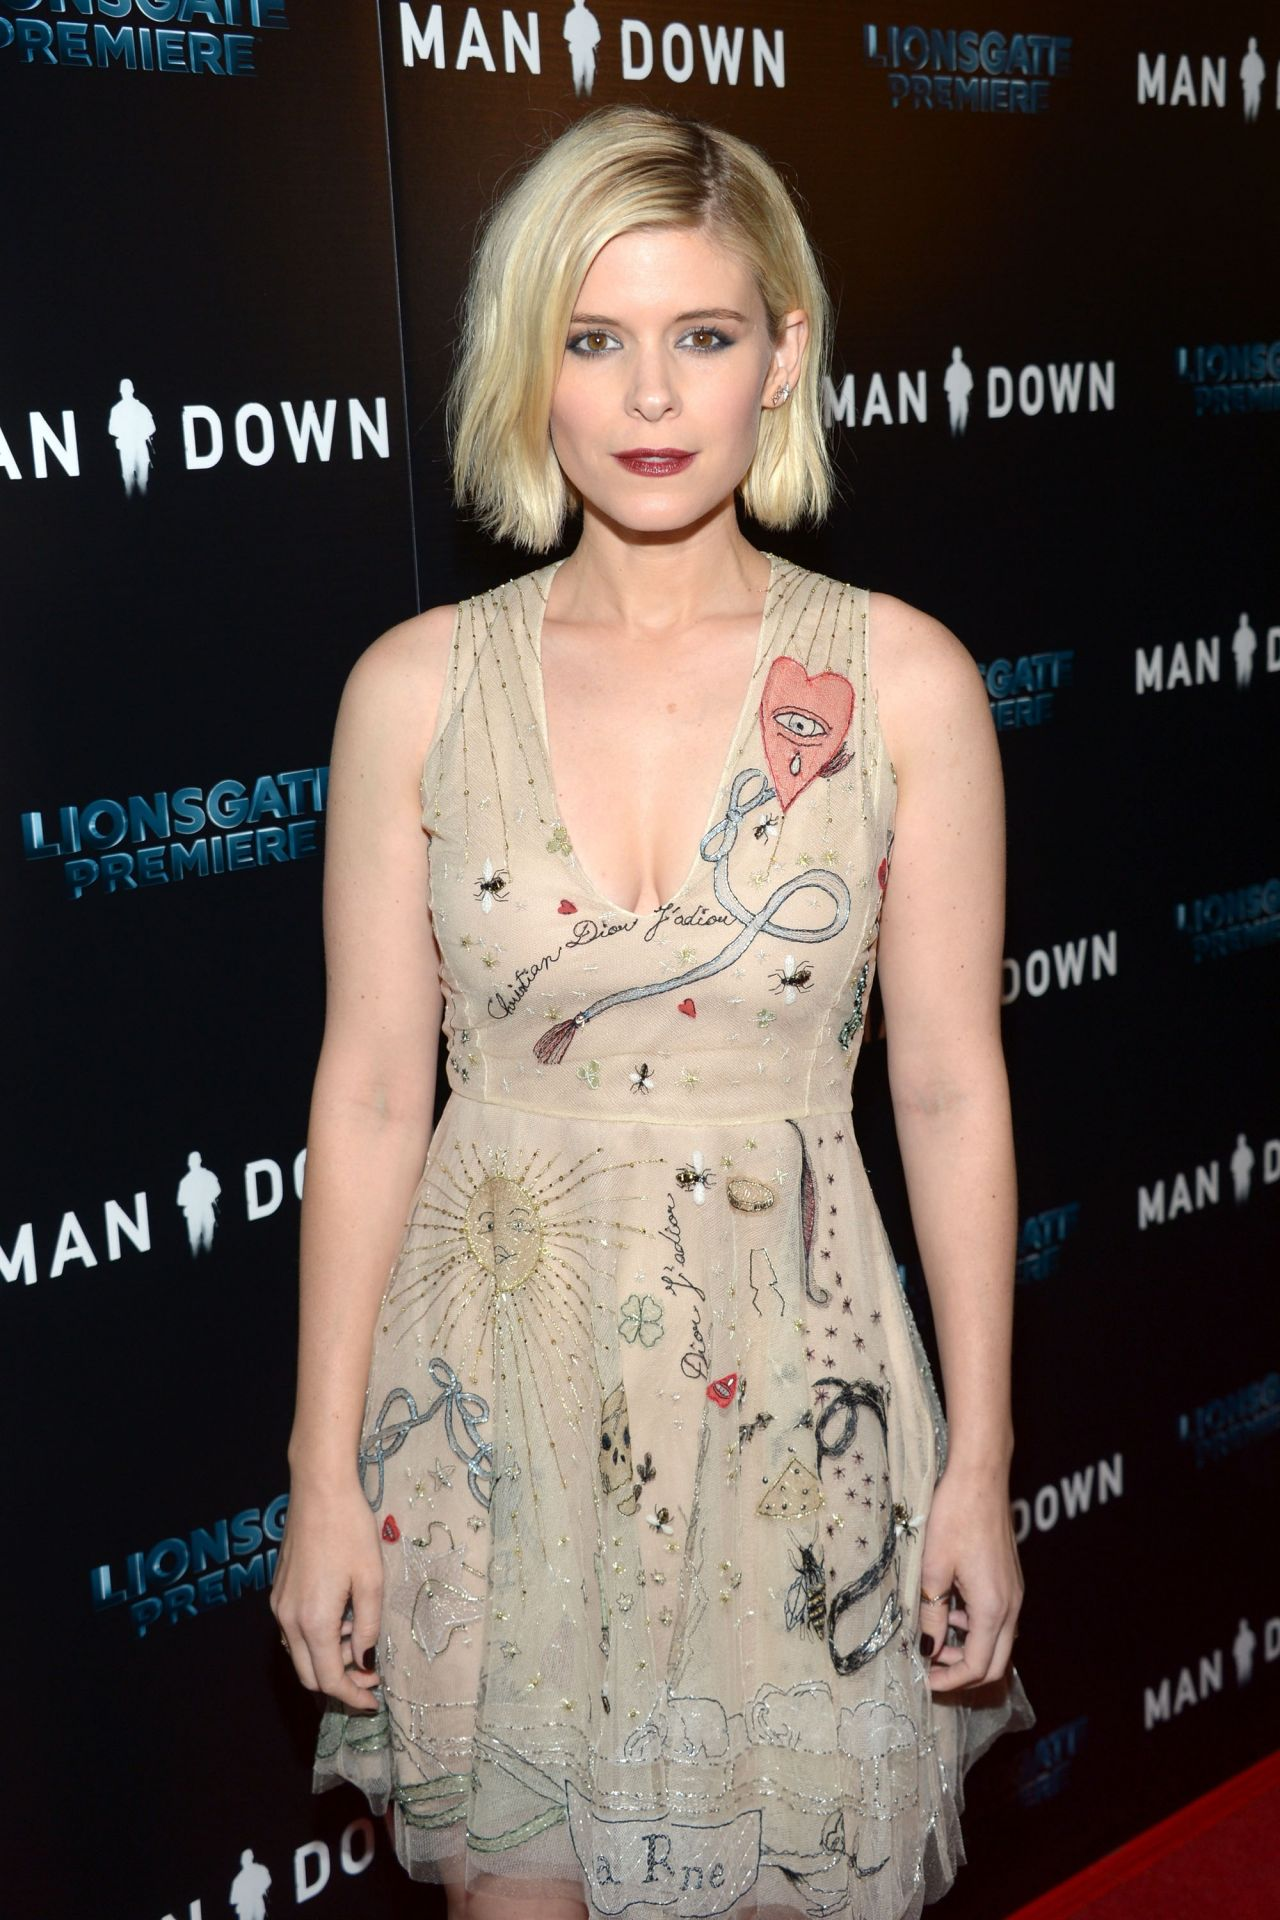 Kate Mara Man Down Premiere At Arclight Hollywood In